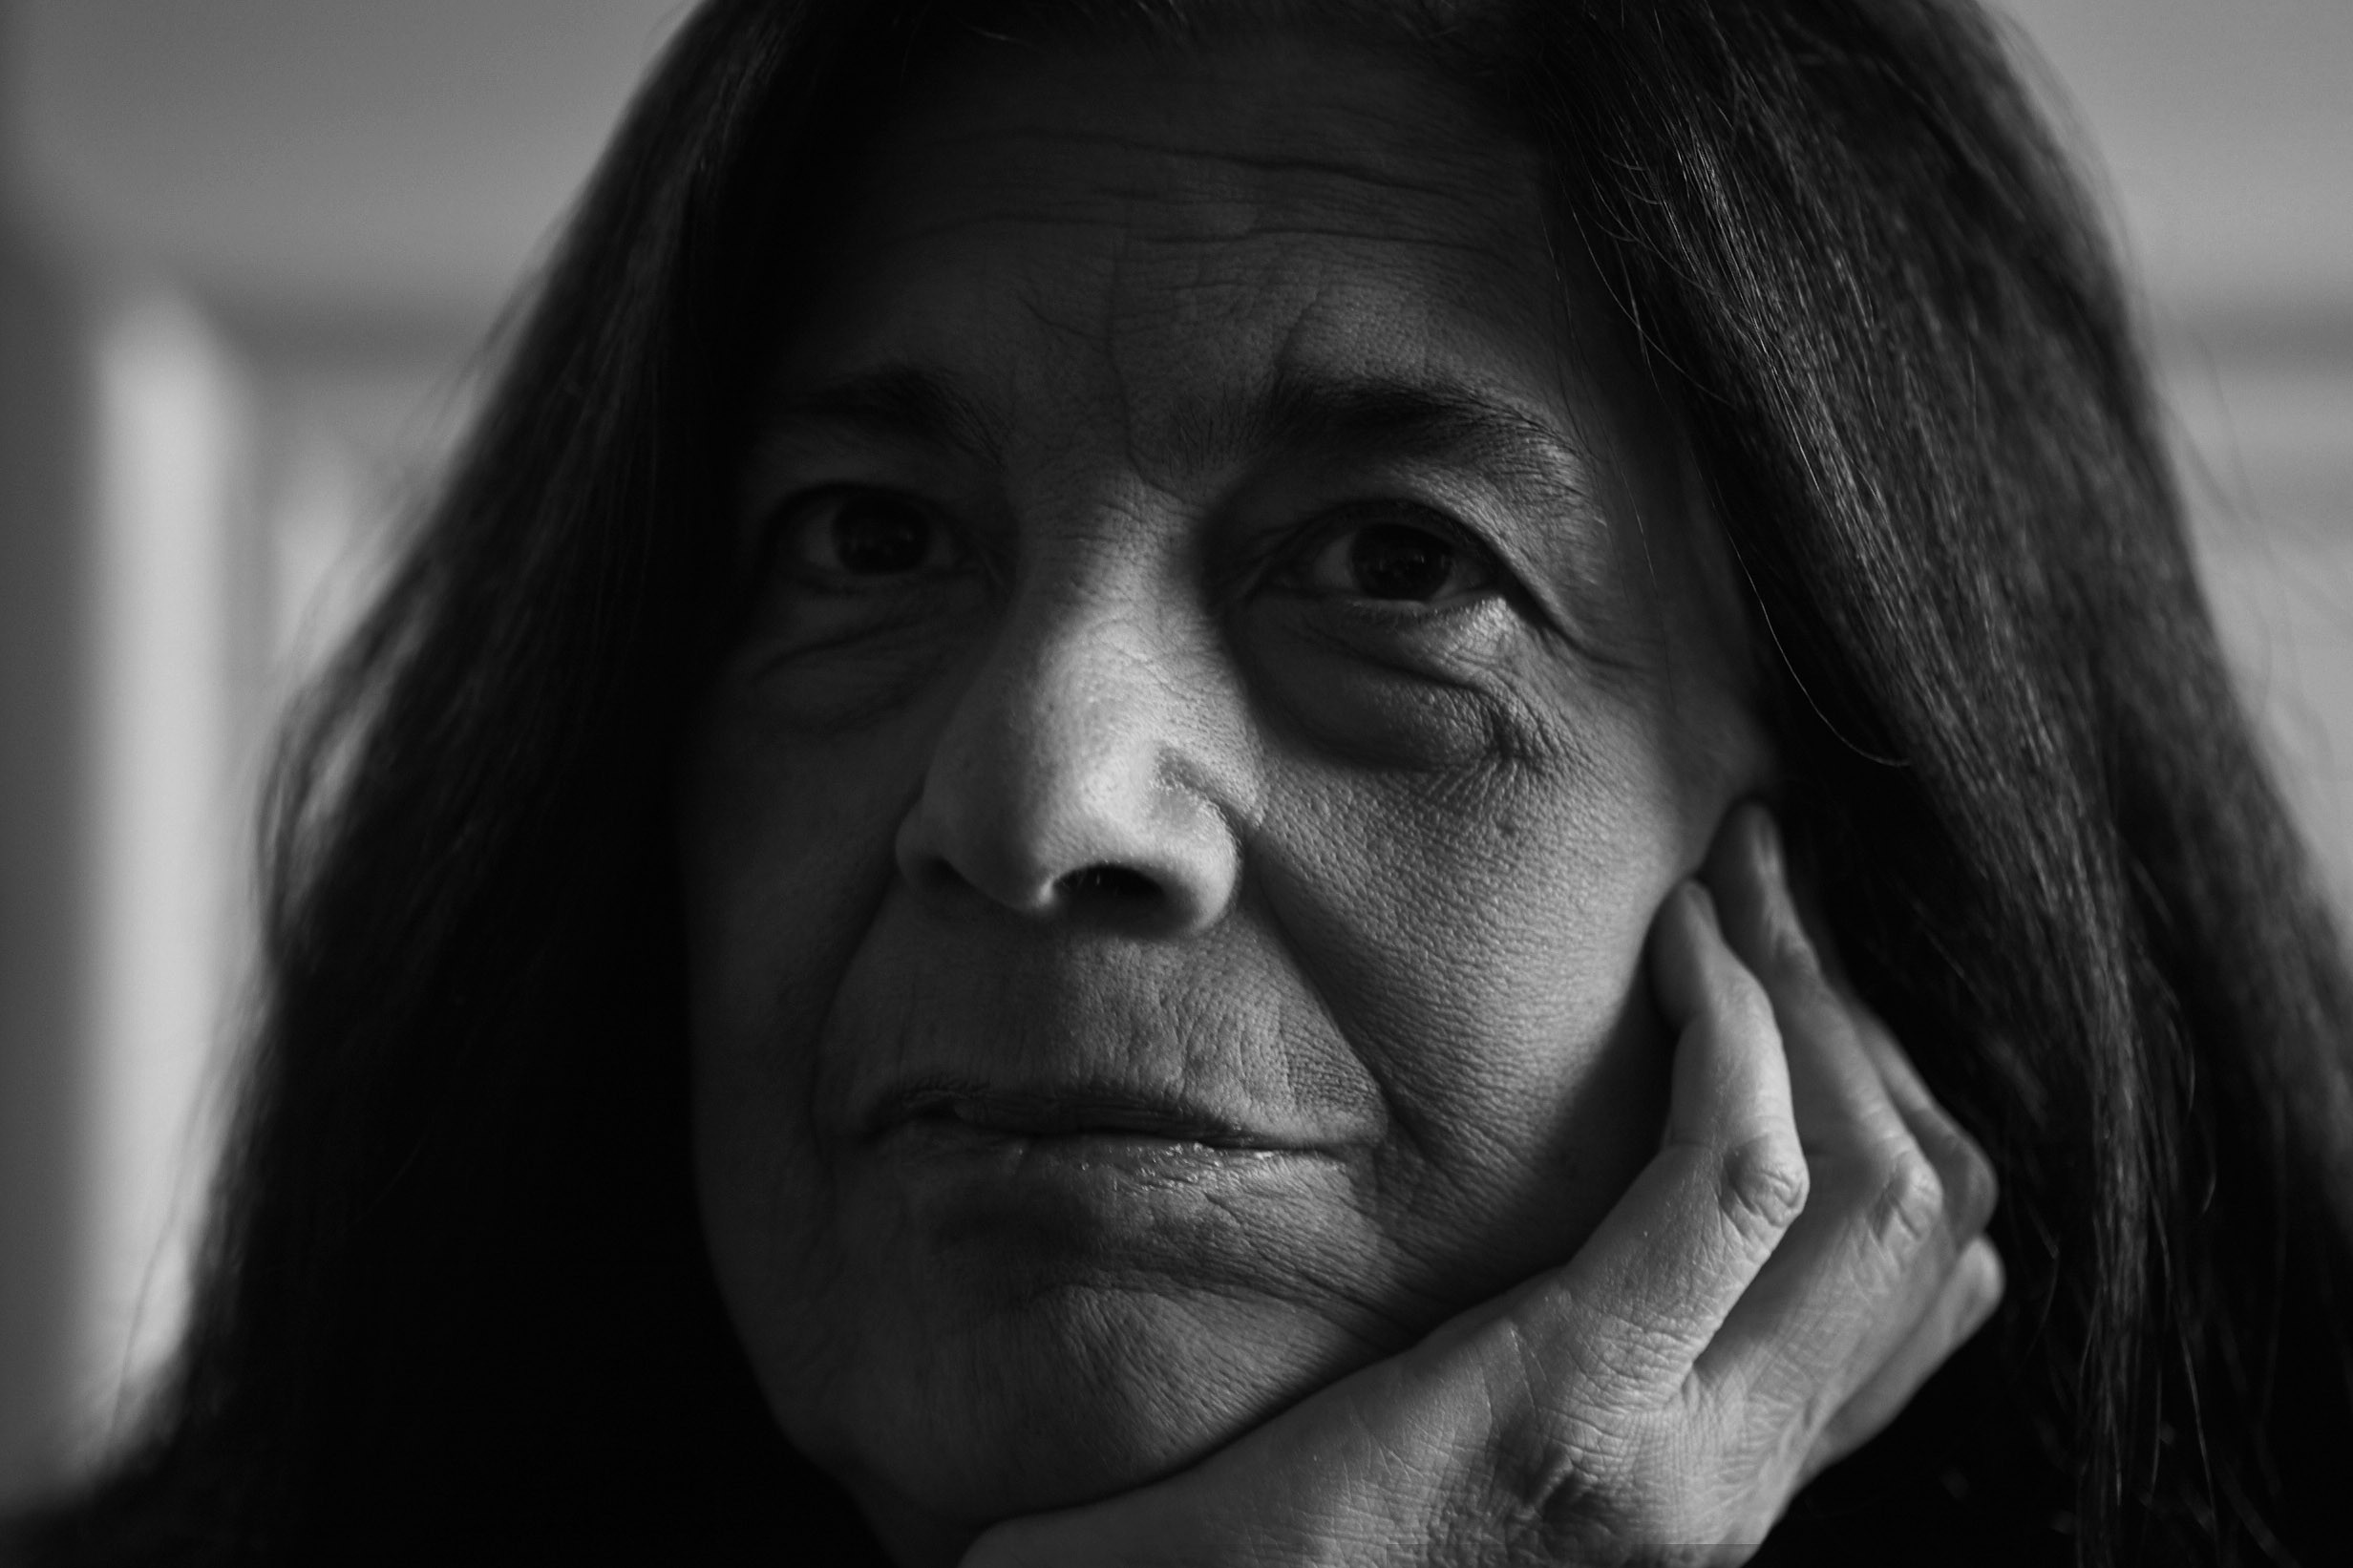 12 March 2004: American writer and philosopher Susan Sontag photographed in Johannesburg at the house of author Nadine Gordimer. (Photograph by James Oatway)